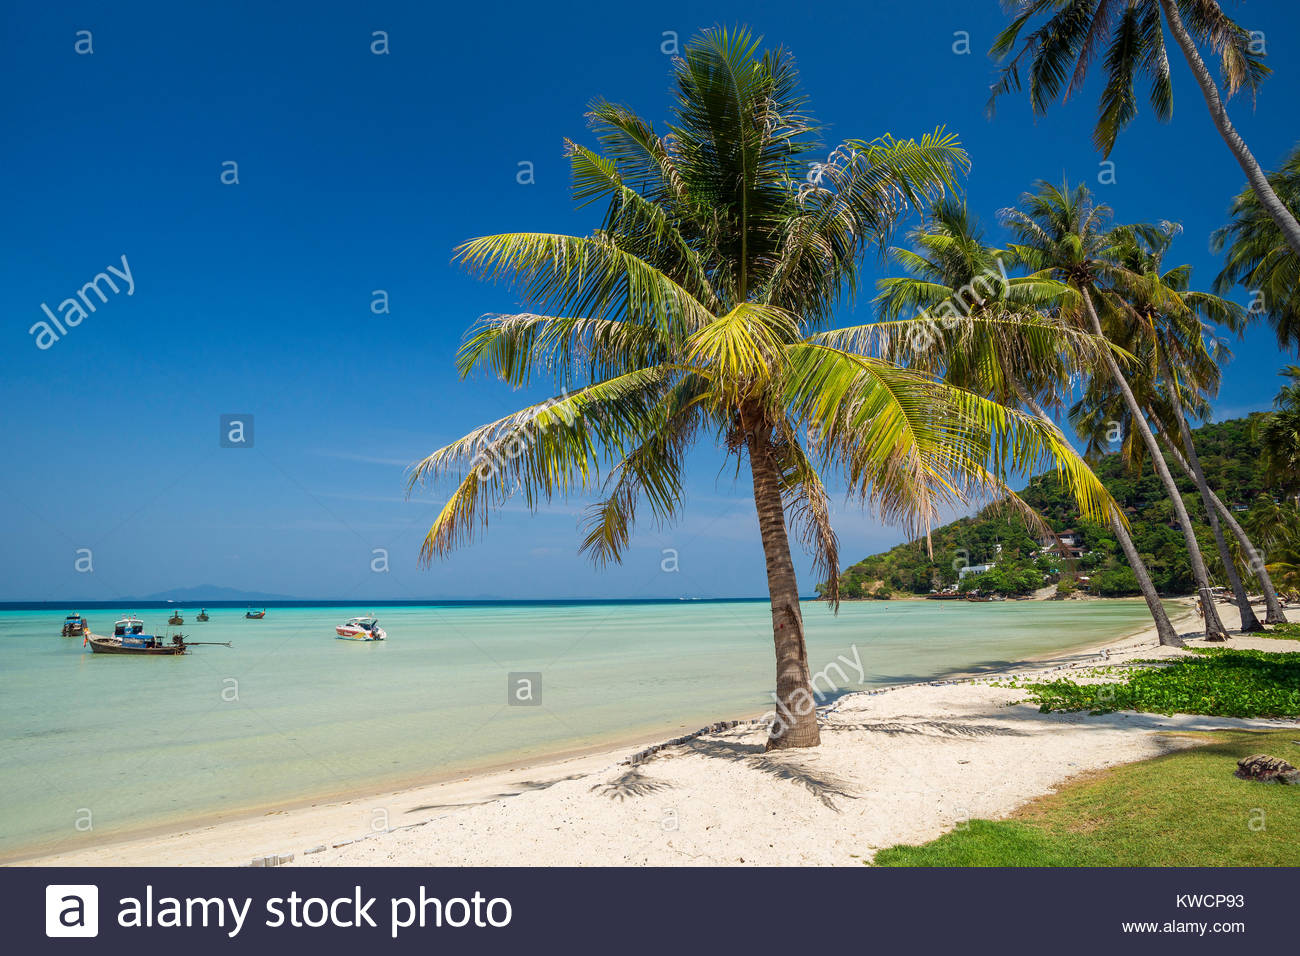 Loh Bagao Bay - Koh Phi Phi Don - Thailand Stock Photo